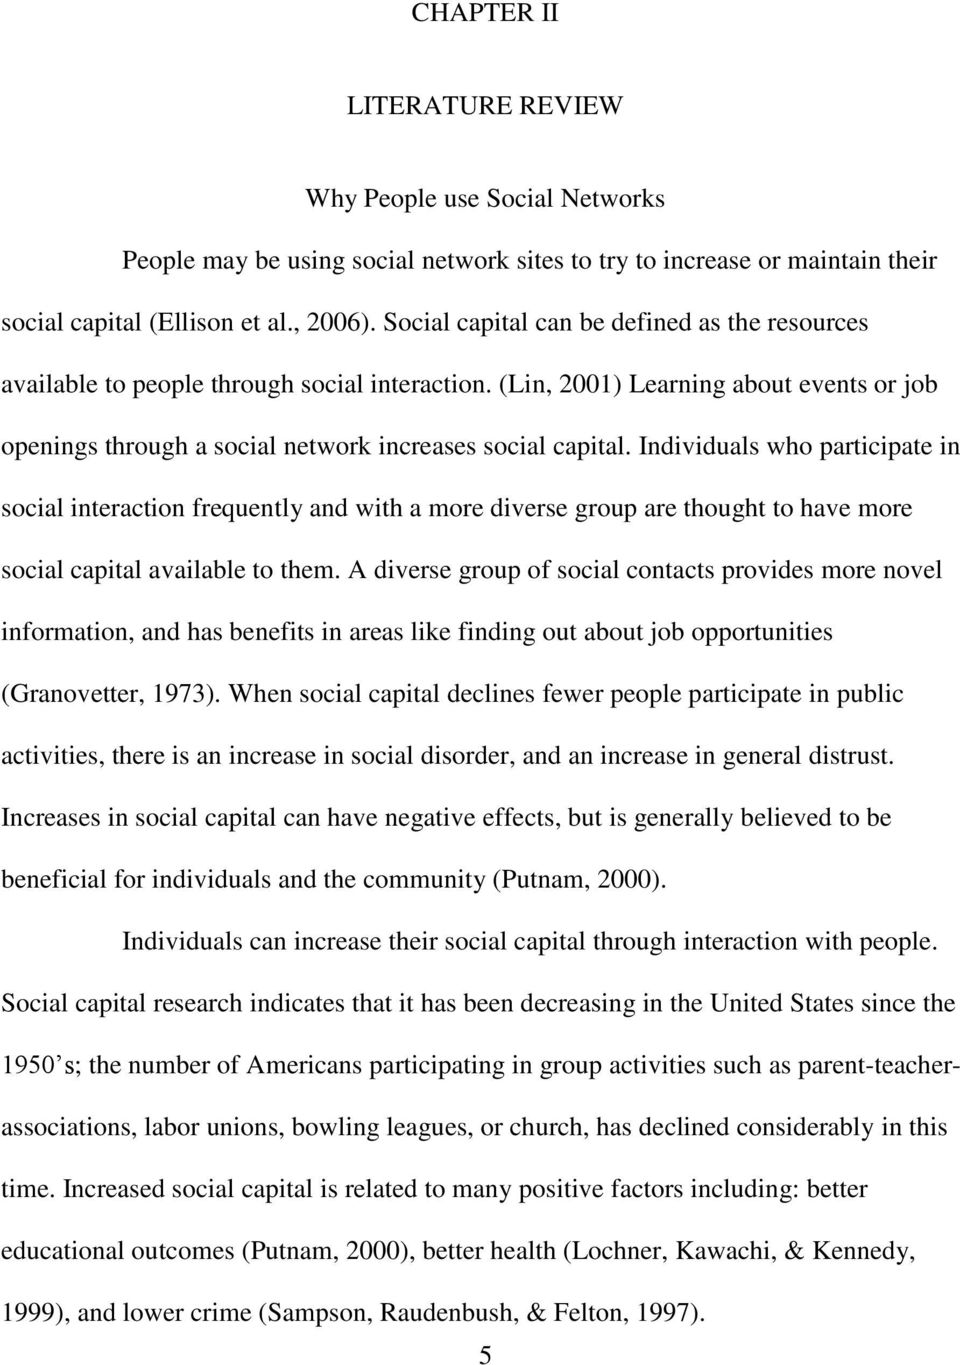 Individuals who participate in social interaction frequently and with a more diverse group are thought to have more social capital available to them.